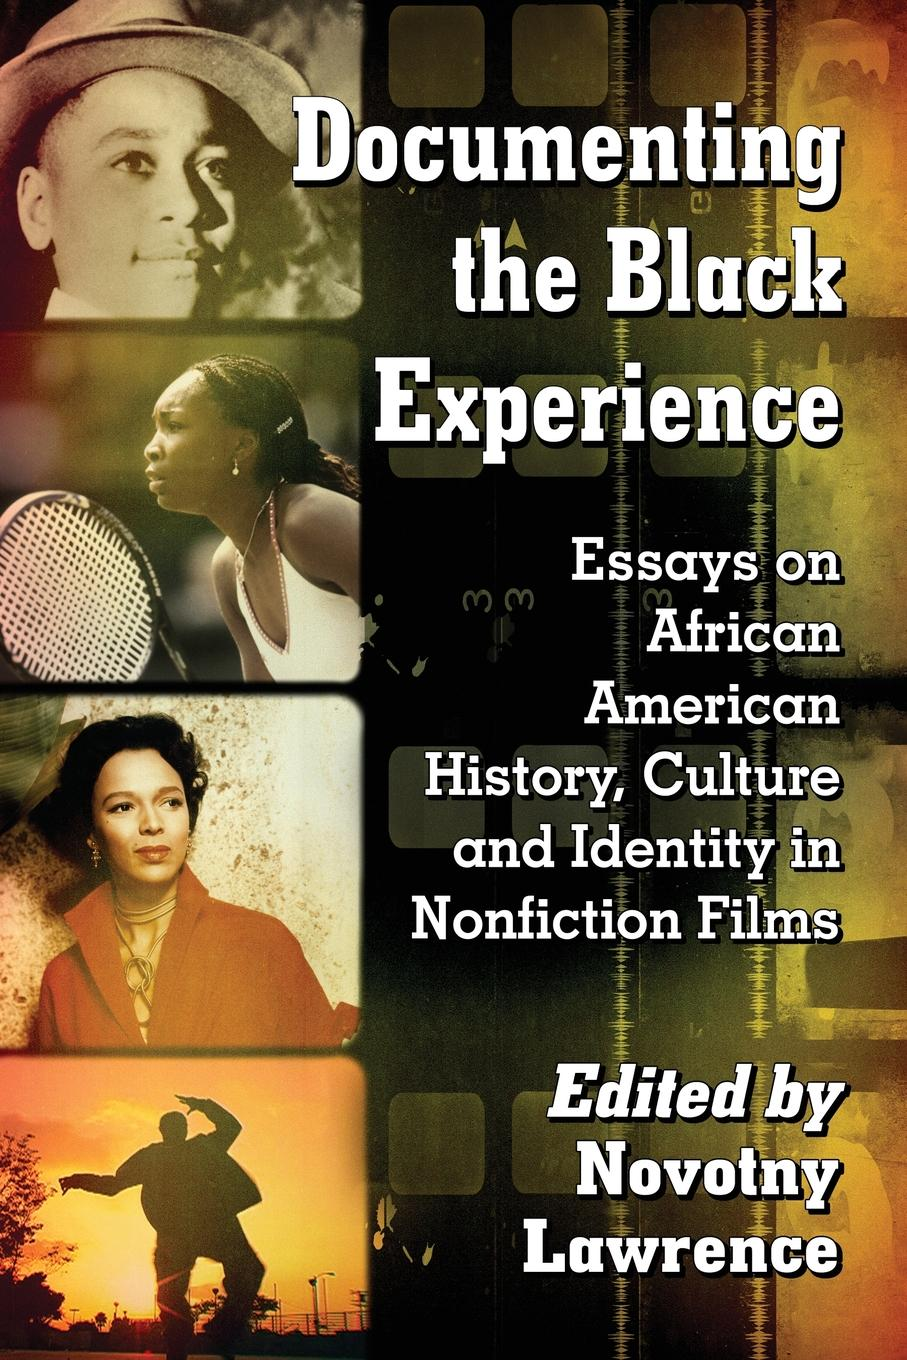 Documenting the Black Experience. Essays on African American History, Culture and Identity in Nonfiction Films